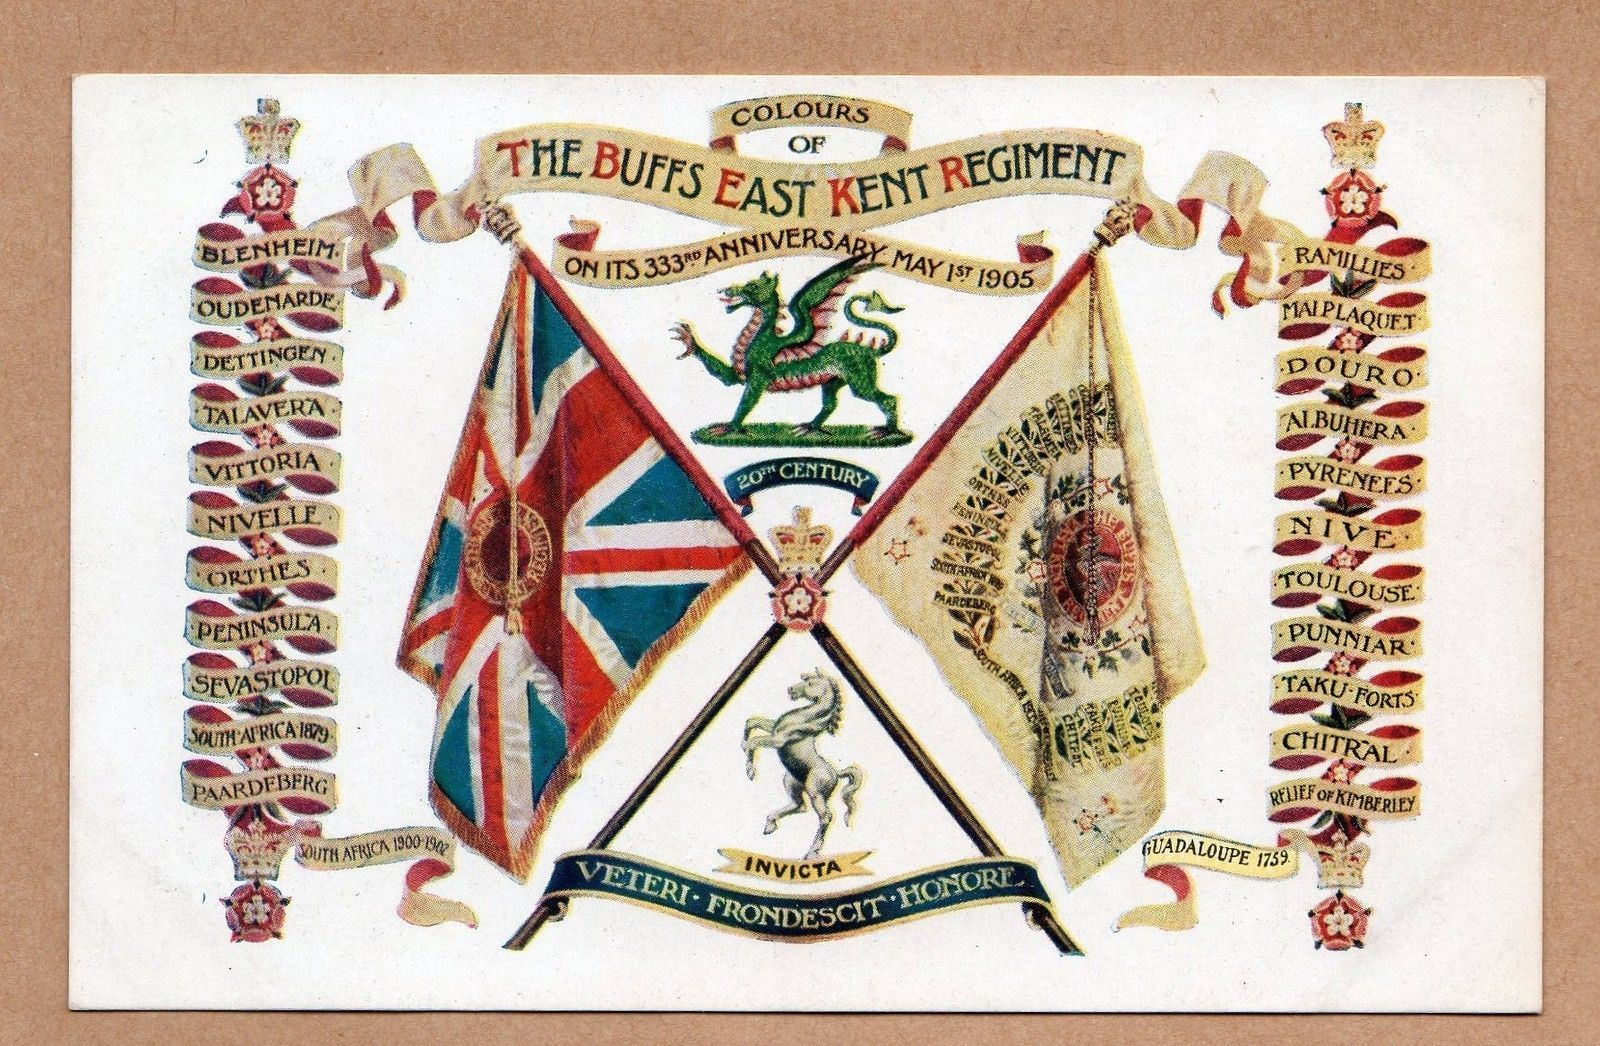 colours of the buffs east kent regiment flags and crest postcard